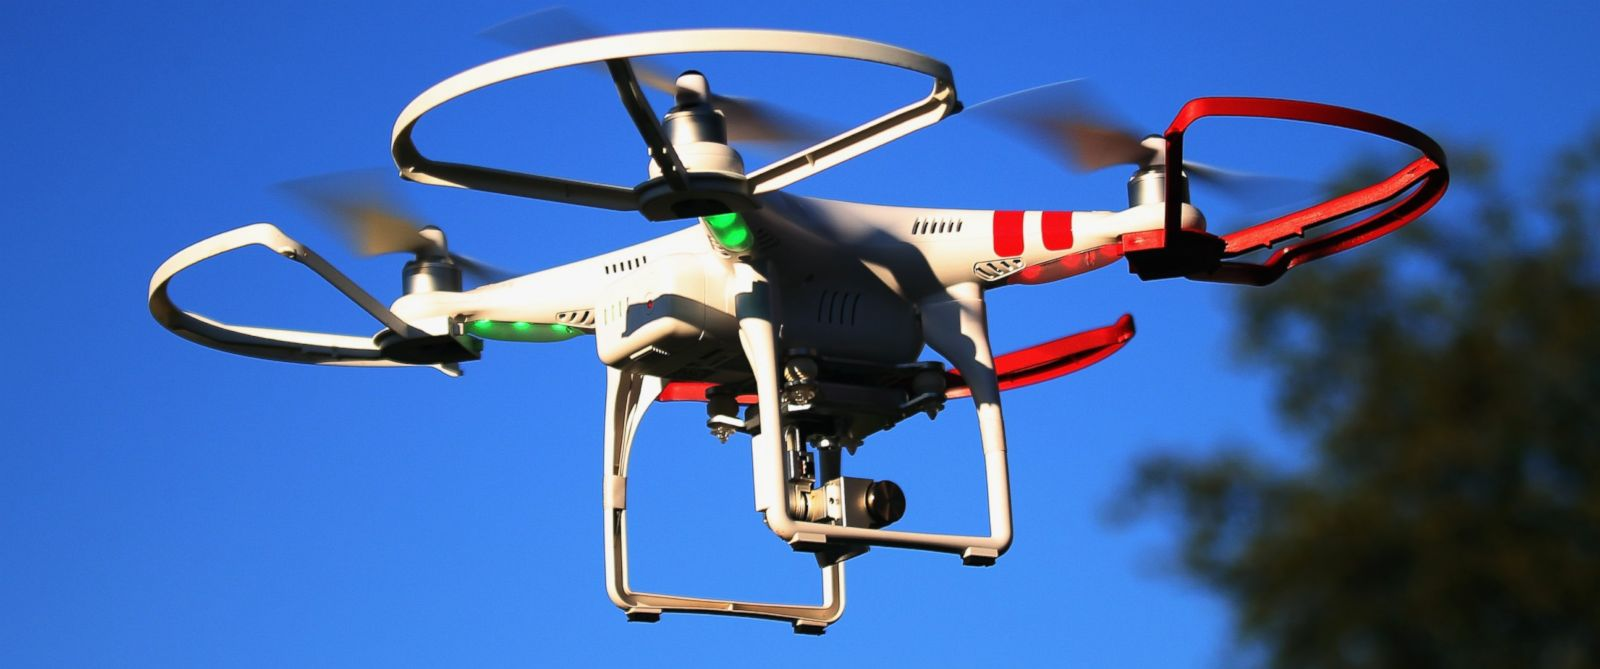 PHOTO: A drone is flown for recreational purposes in the sky above Old Bethpage, N.Y. on Sept. 5, 2015.